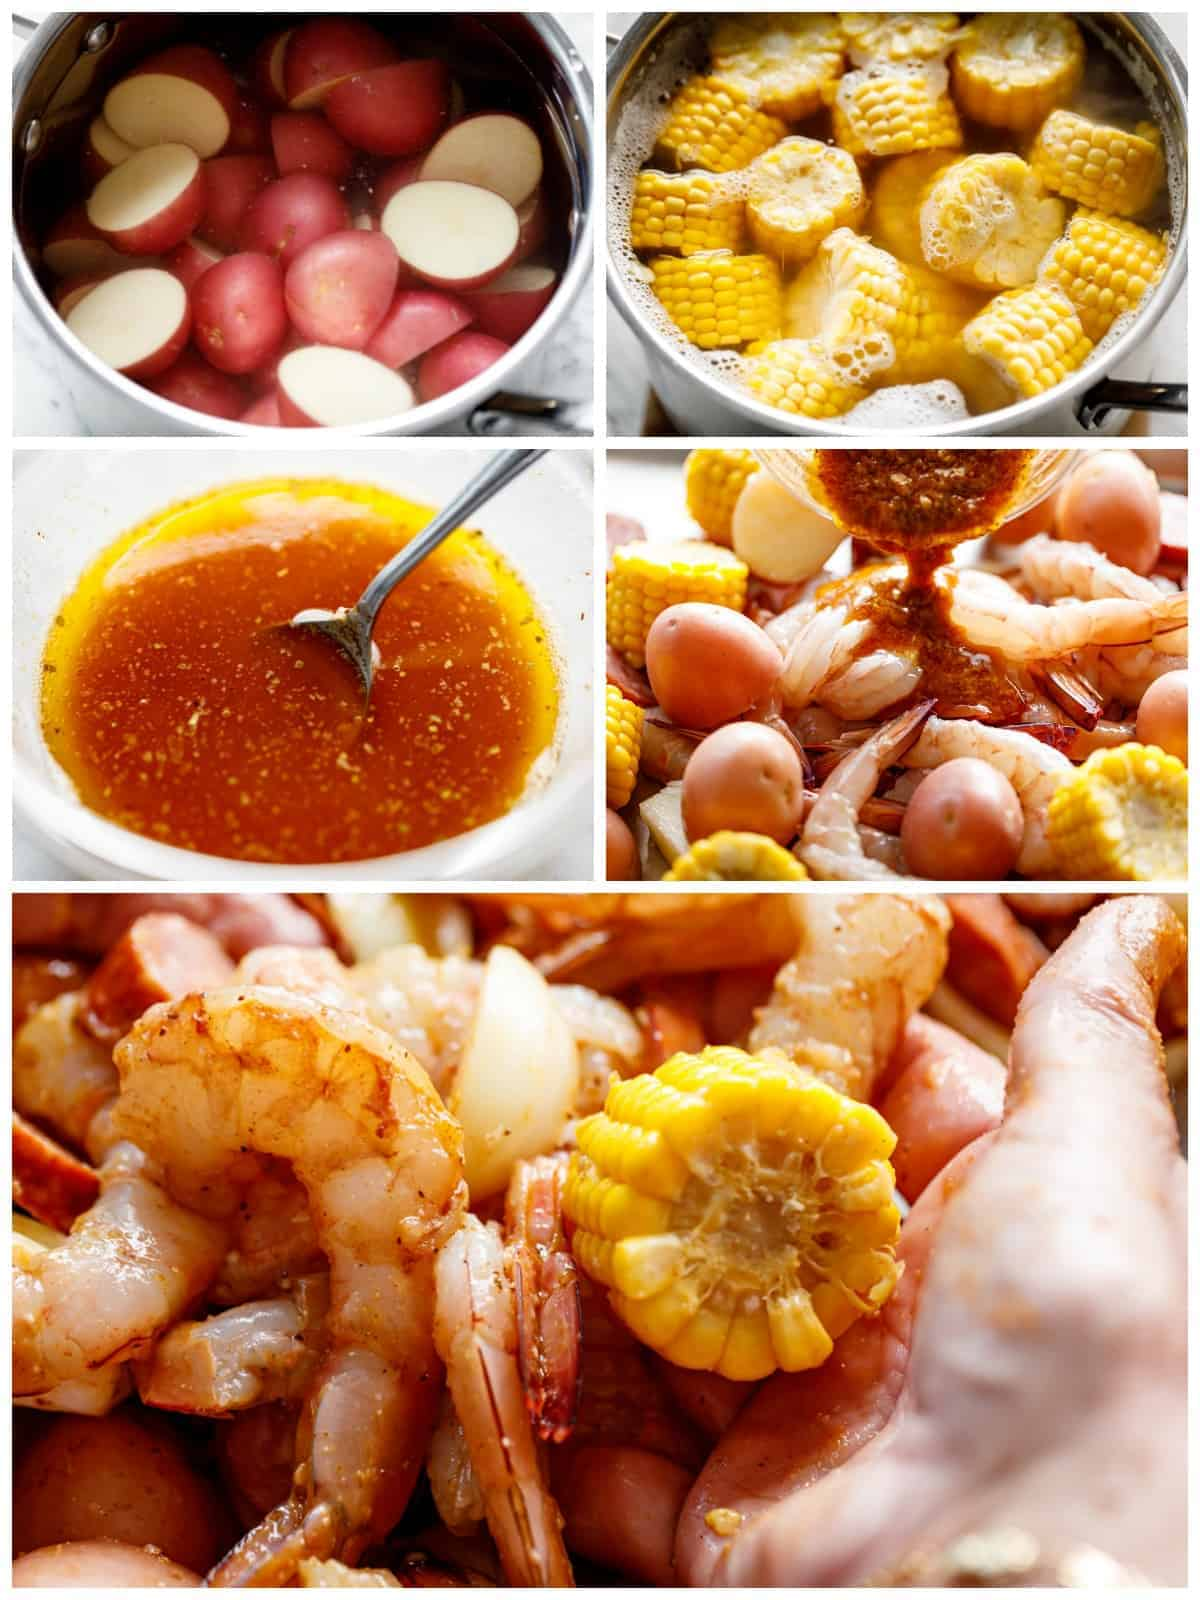 How to make Shrimp Boil smothered in garlic butter and Old Bay seasoning in the oven. | cafedelites.com